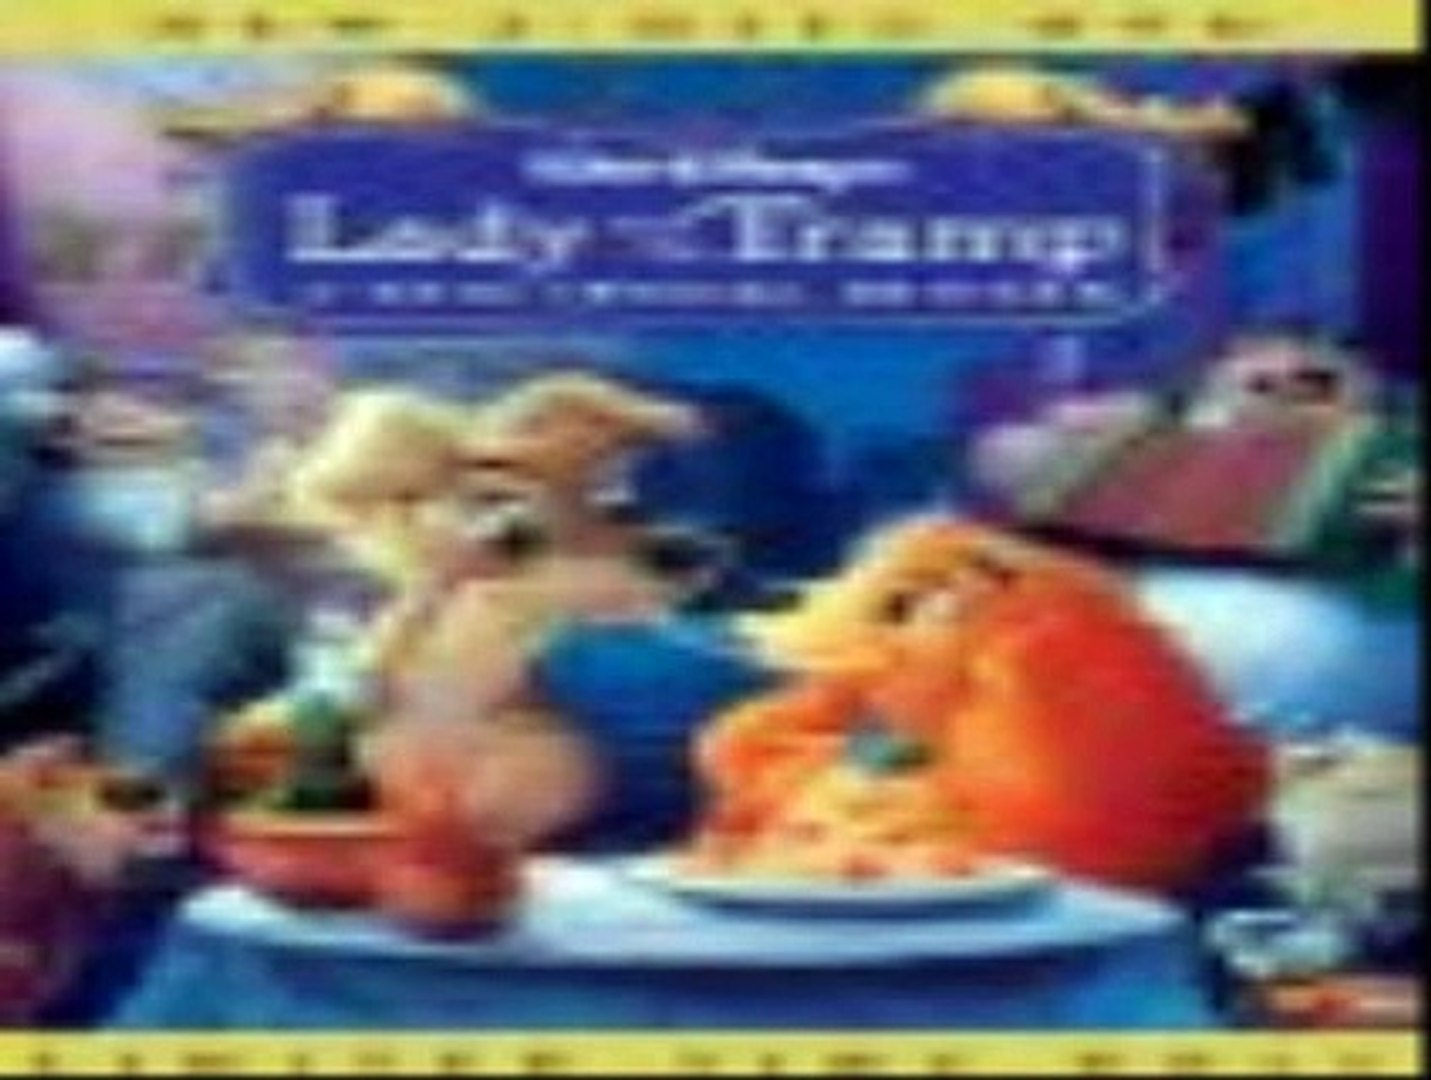 Lady And The Tramp 1955 Original Full Movie Hd Quality Video Dailymotion